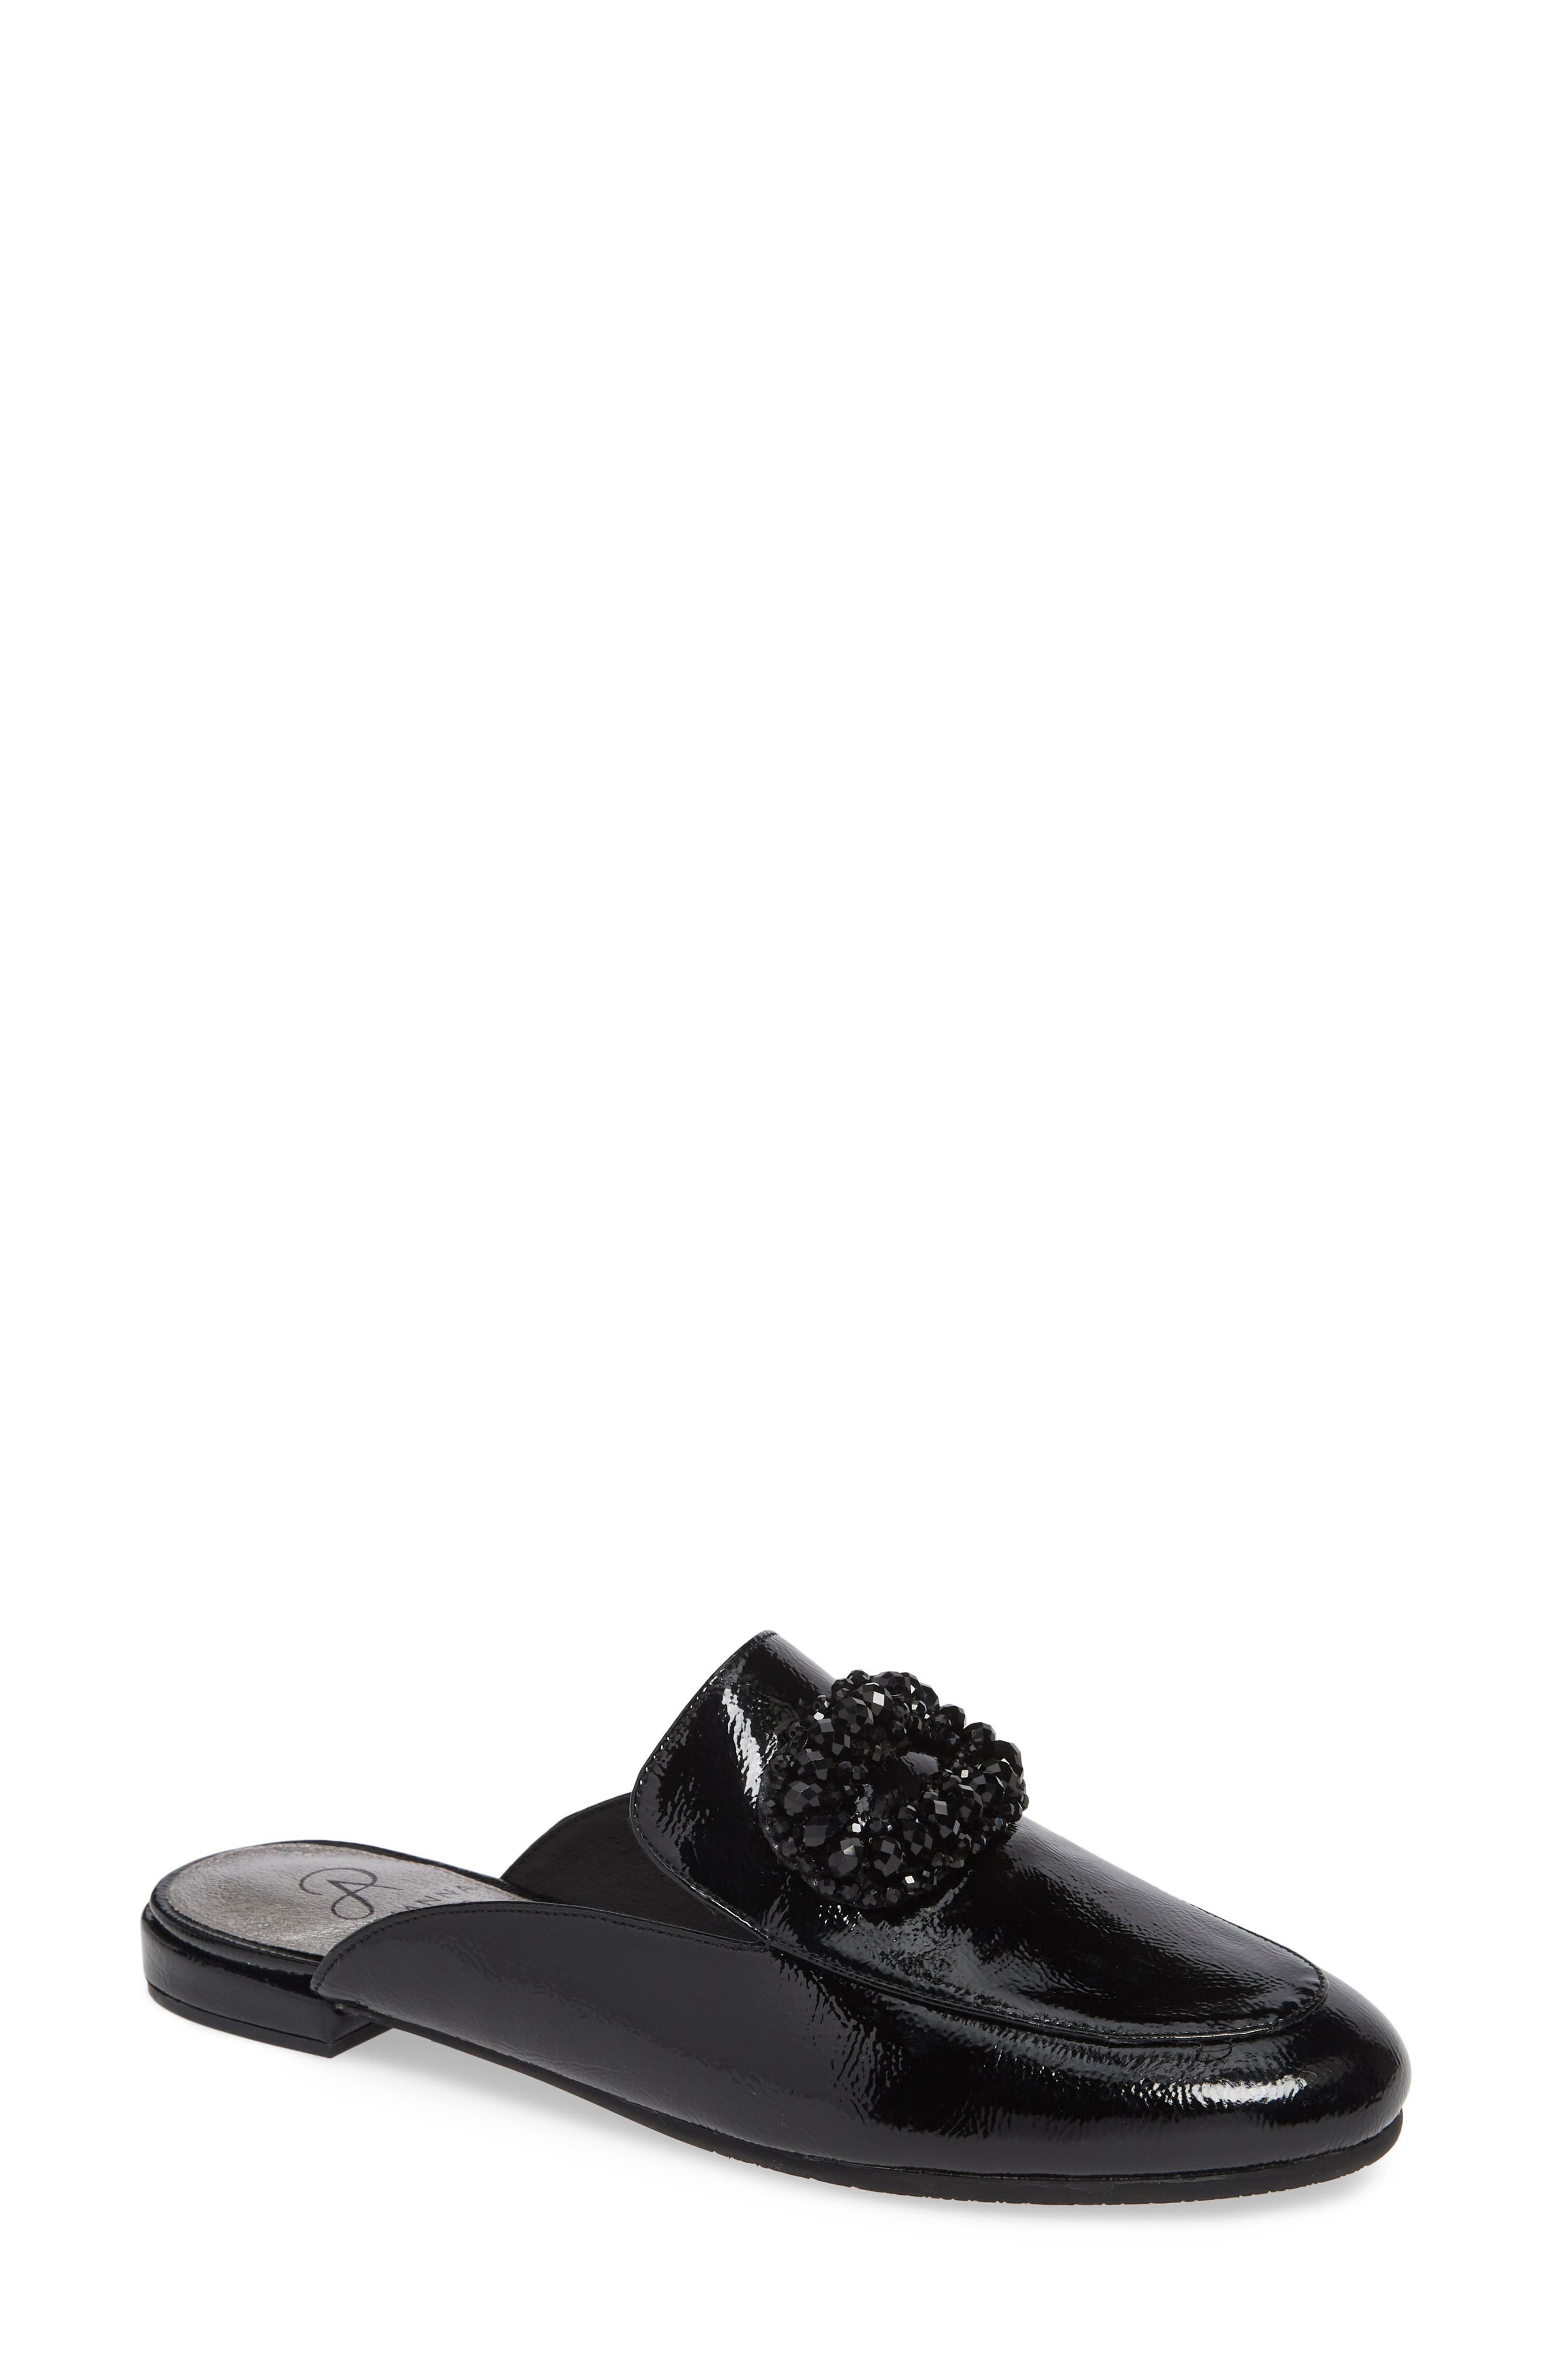 Adrianna Papell Becky Embellished Mule- Black